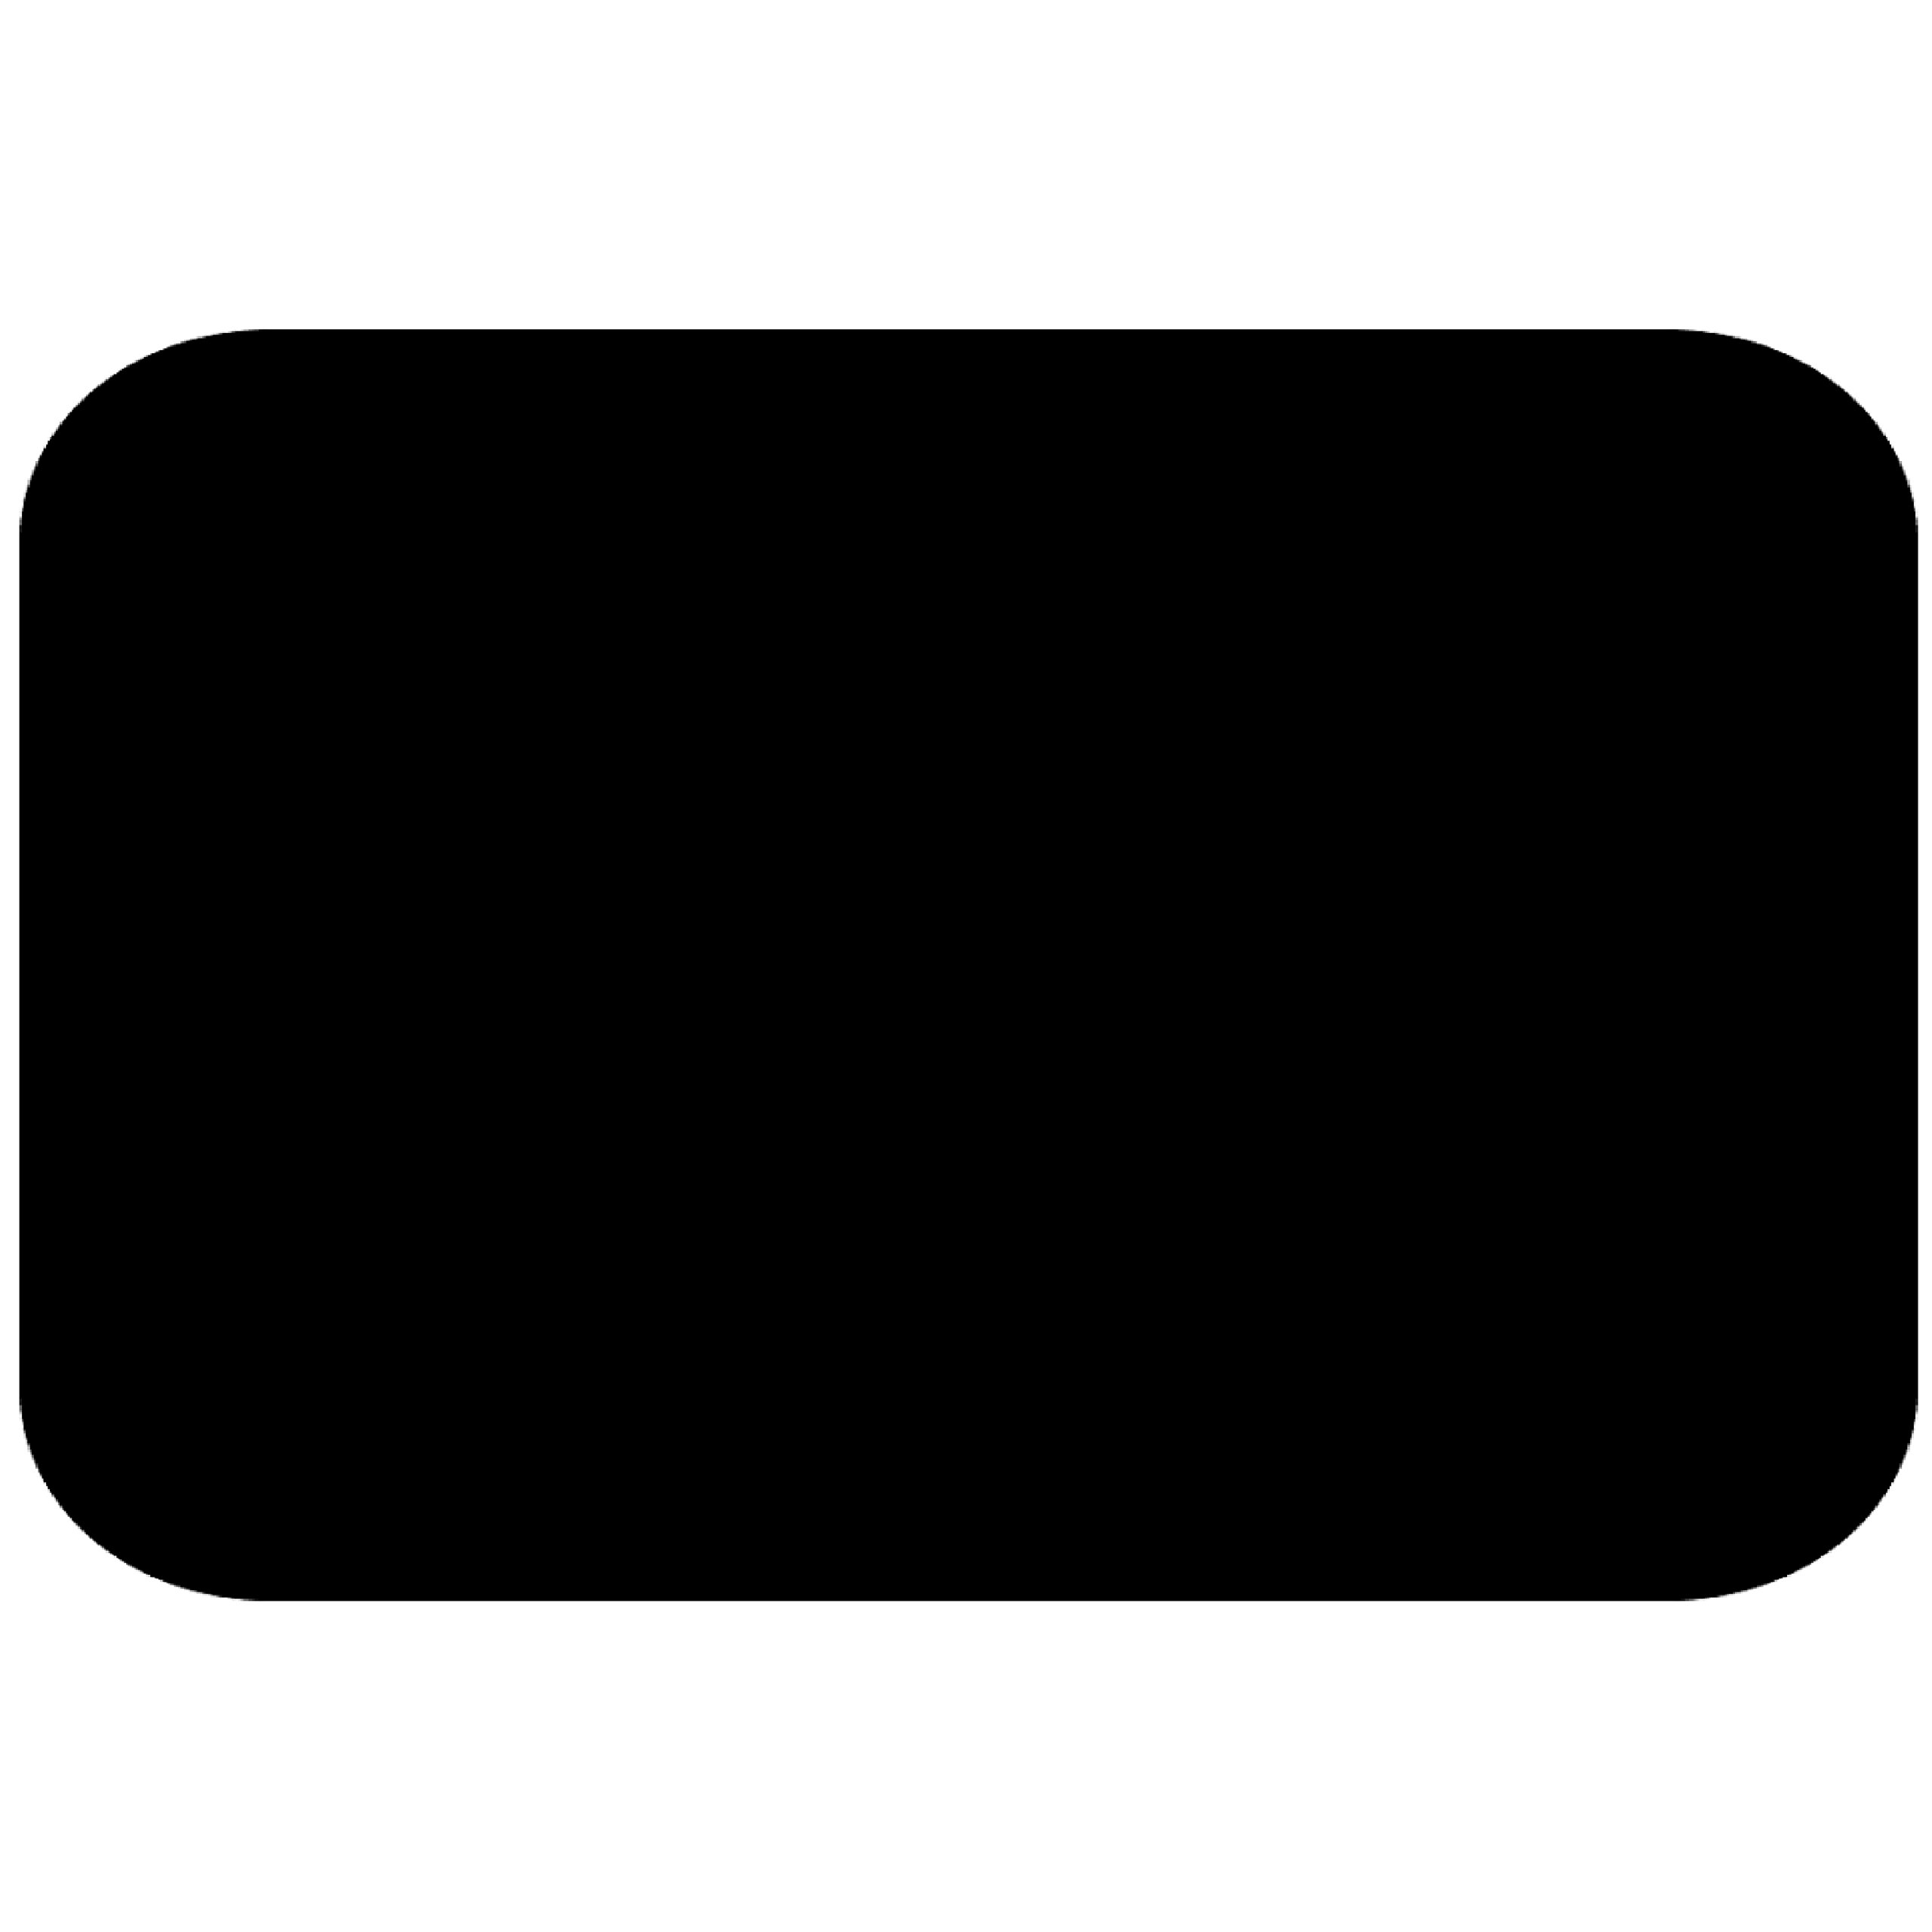 Colonial Cards: 100 Color Cardstock 4'' x 6'' Index Cards, Black, Unruled with Rounded Corners